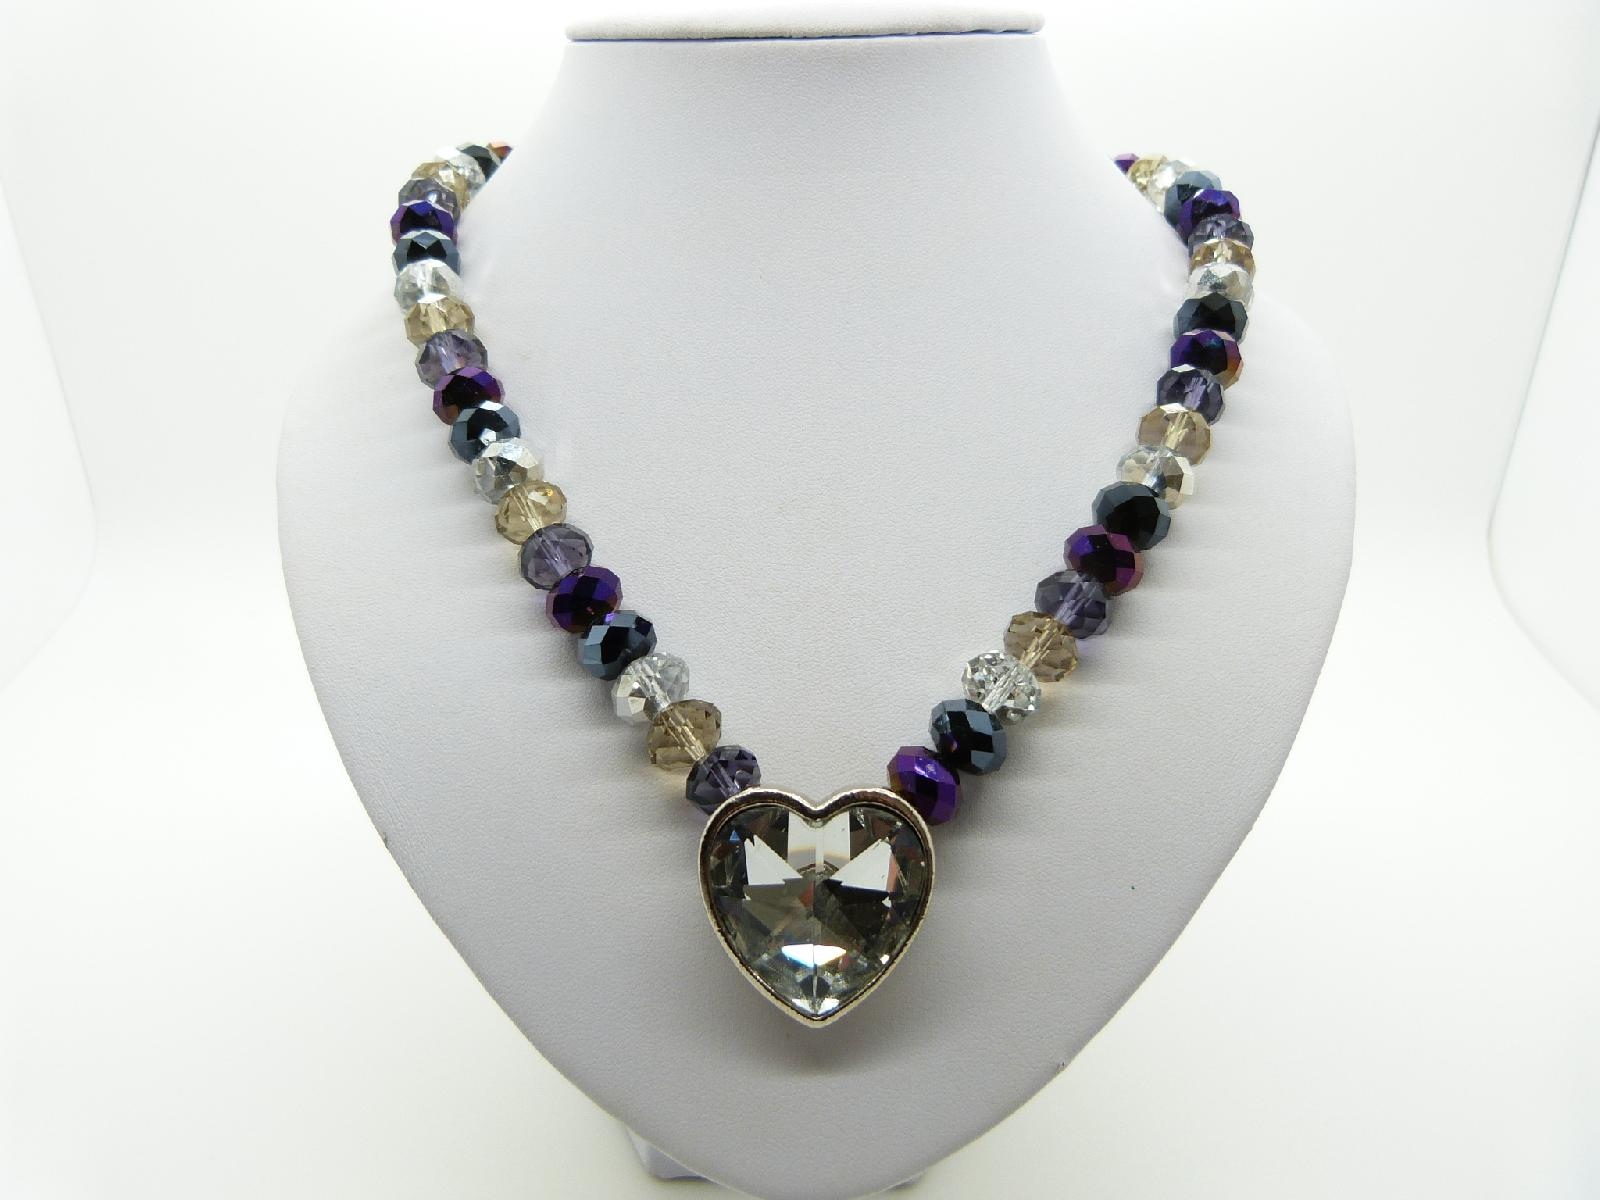 Multicoloured Crystal Glass Bead Necklace with Heart Shaped Crystal Pendant